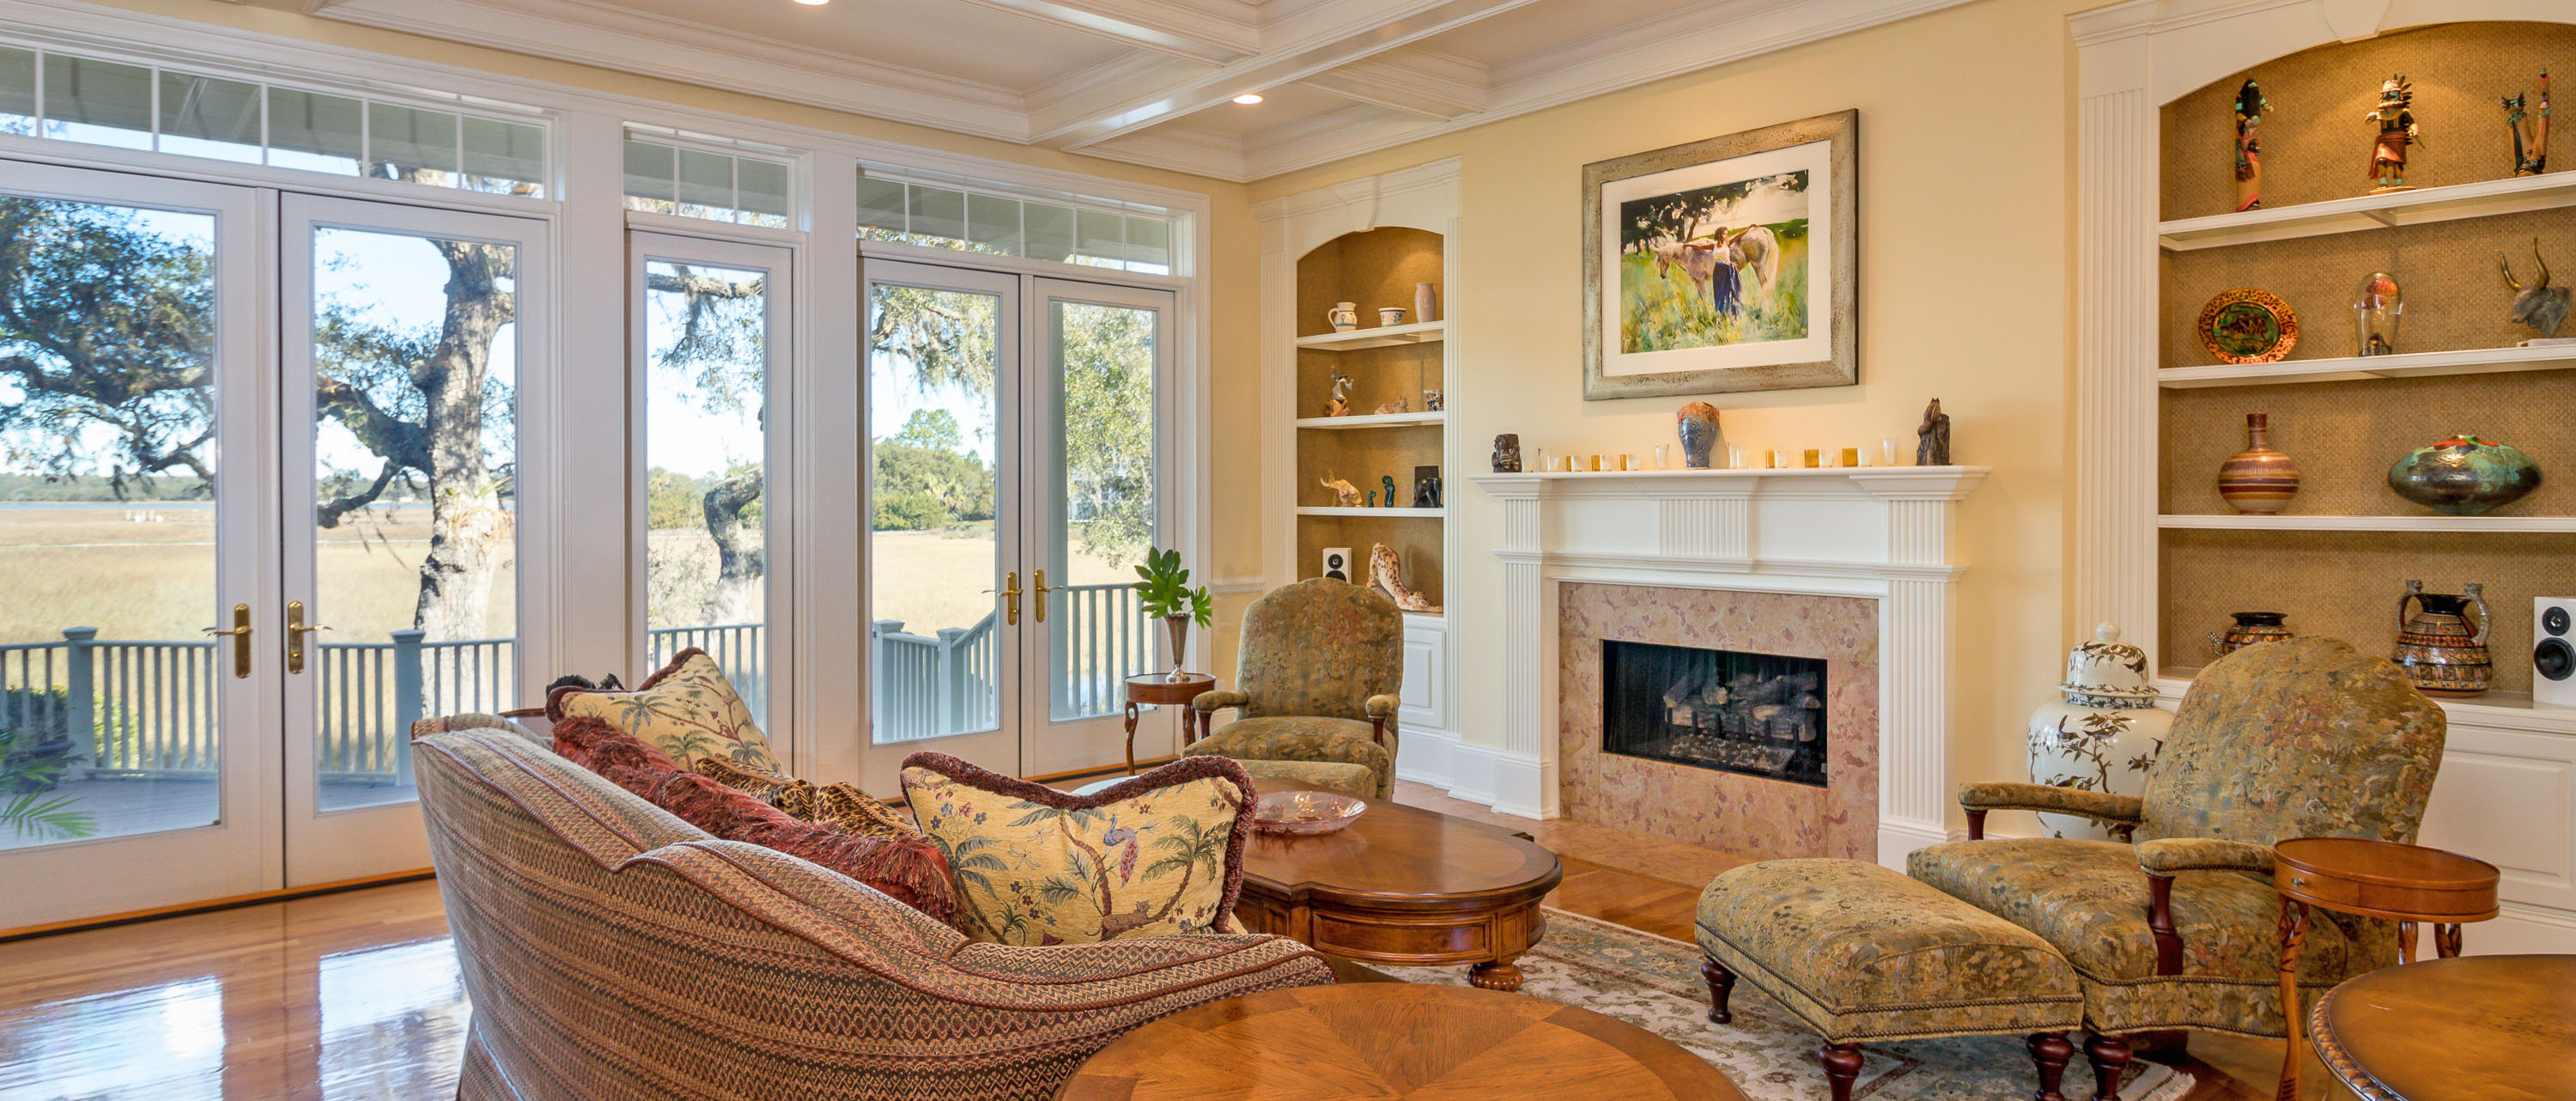 1405 Nancy Island Drive, Seabrook Island living room